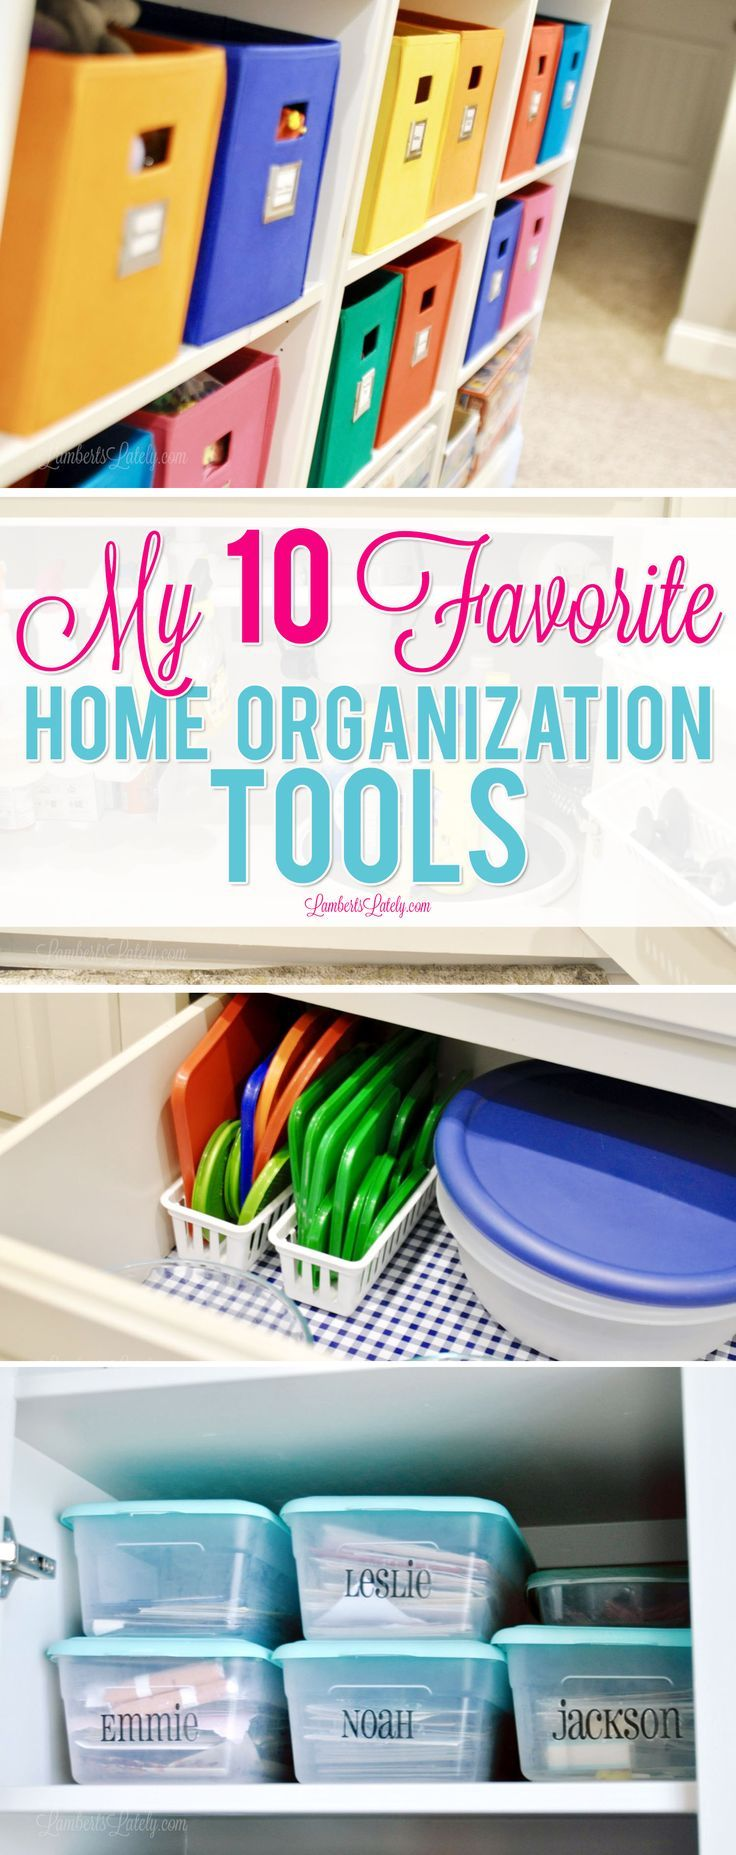 Find great storage solutions for any size home in this round-up of organization … #DIYs to improve living large…